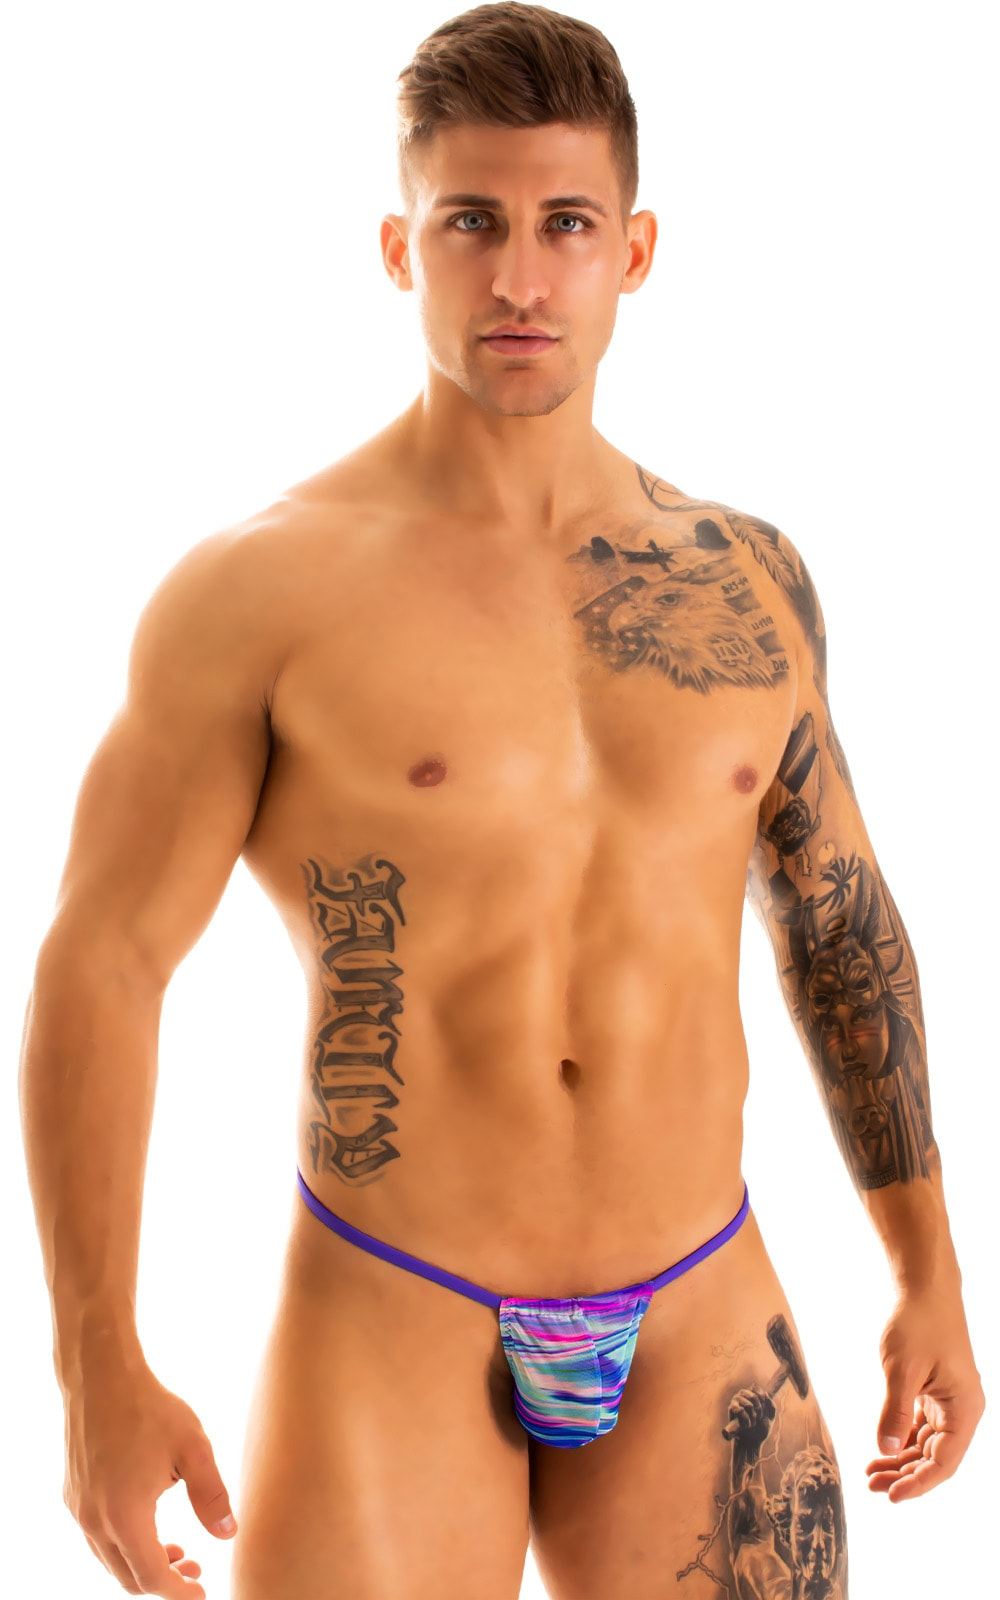 G String Swimsuit - Adjustable Pouch in Phaser on Mesh with Indaco Strings  1